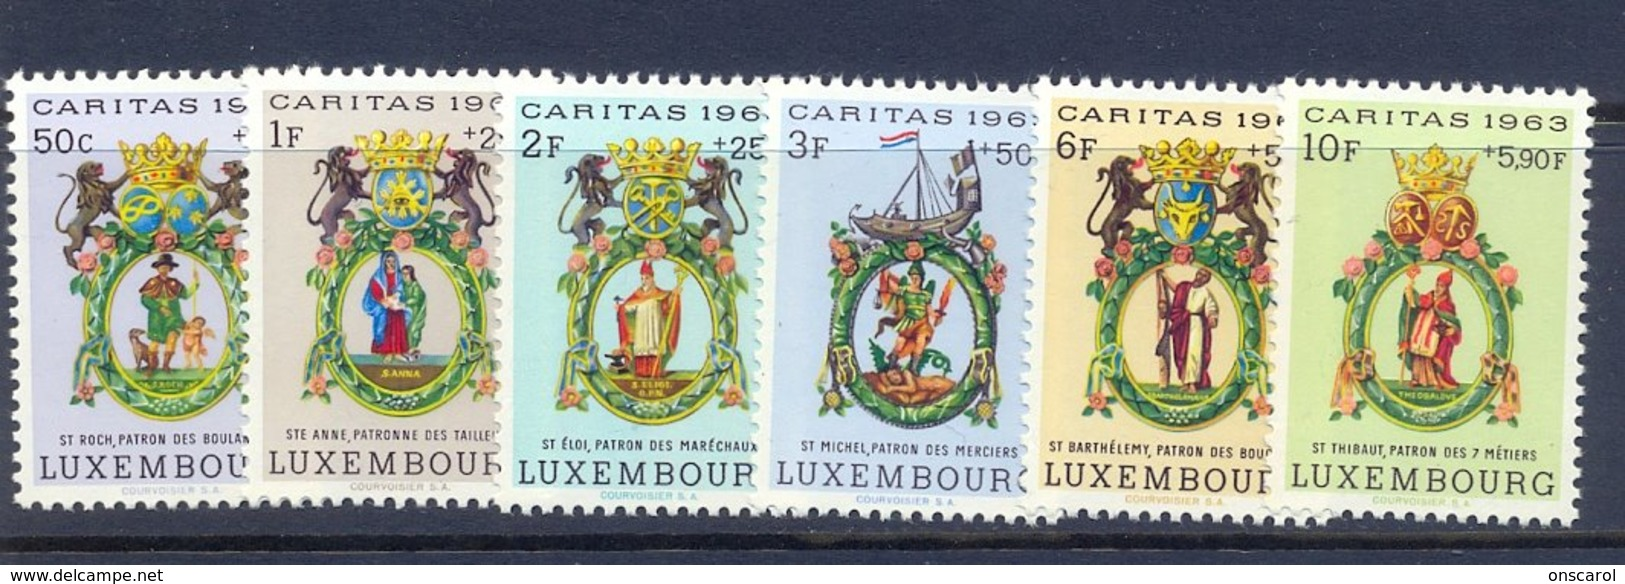 Nrs. 638/643 ** MNH Postgaaf - Luxembourg